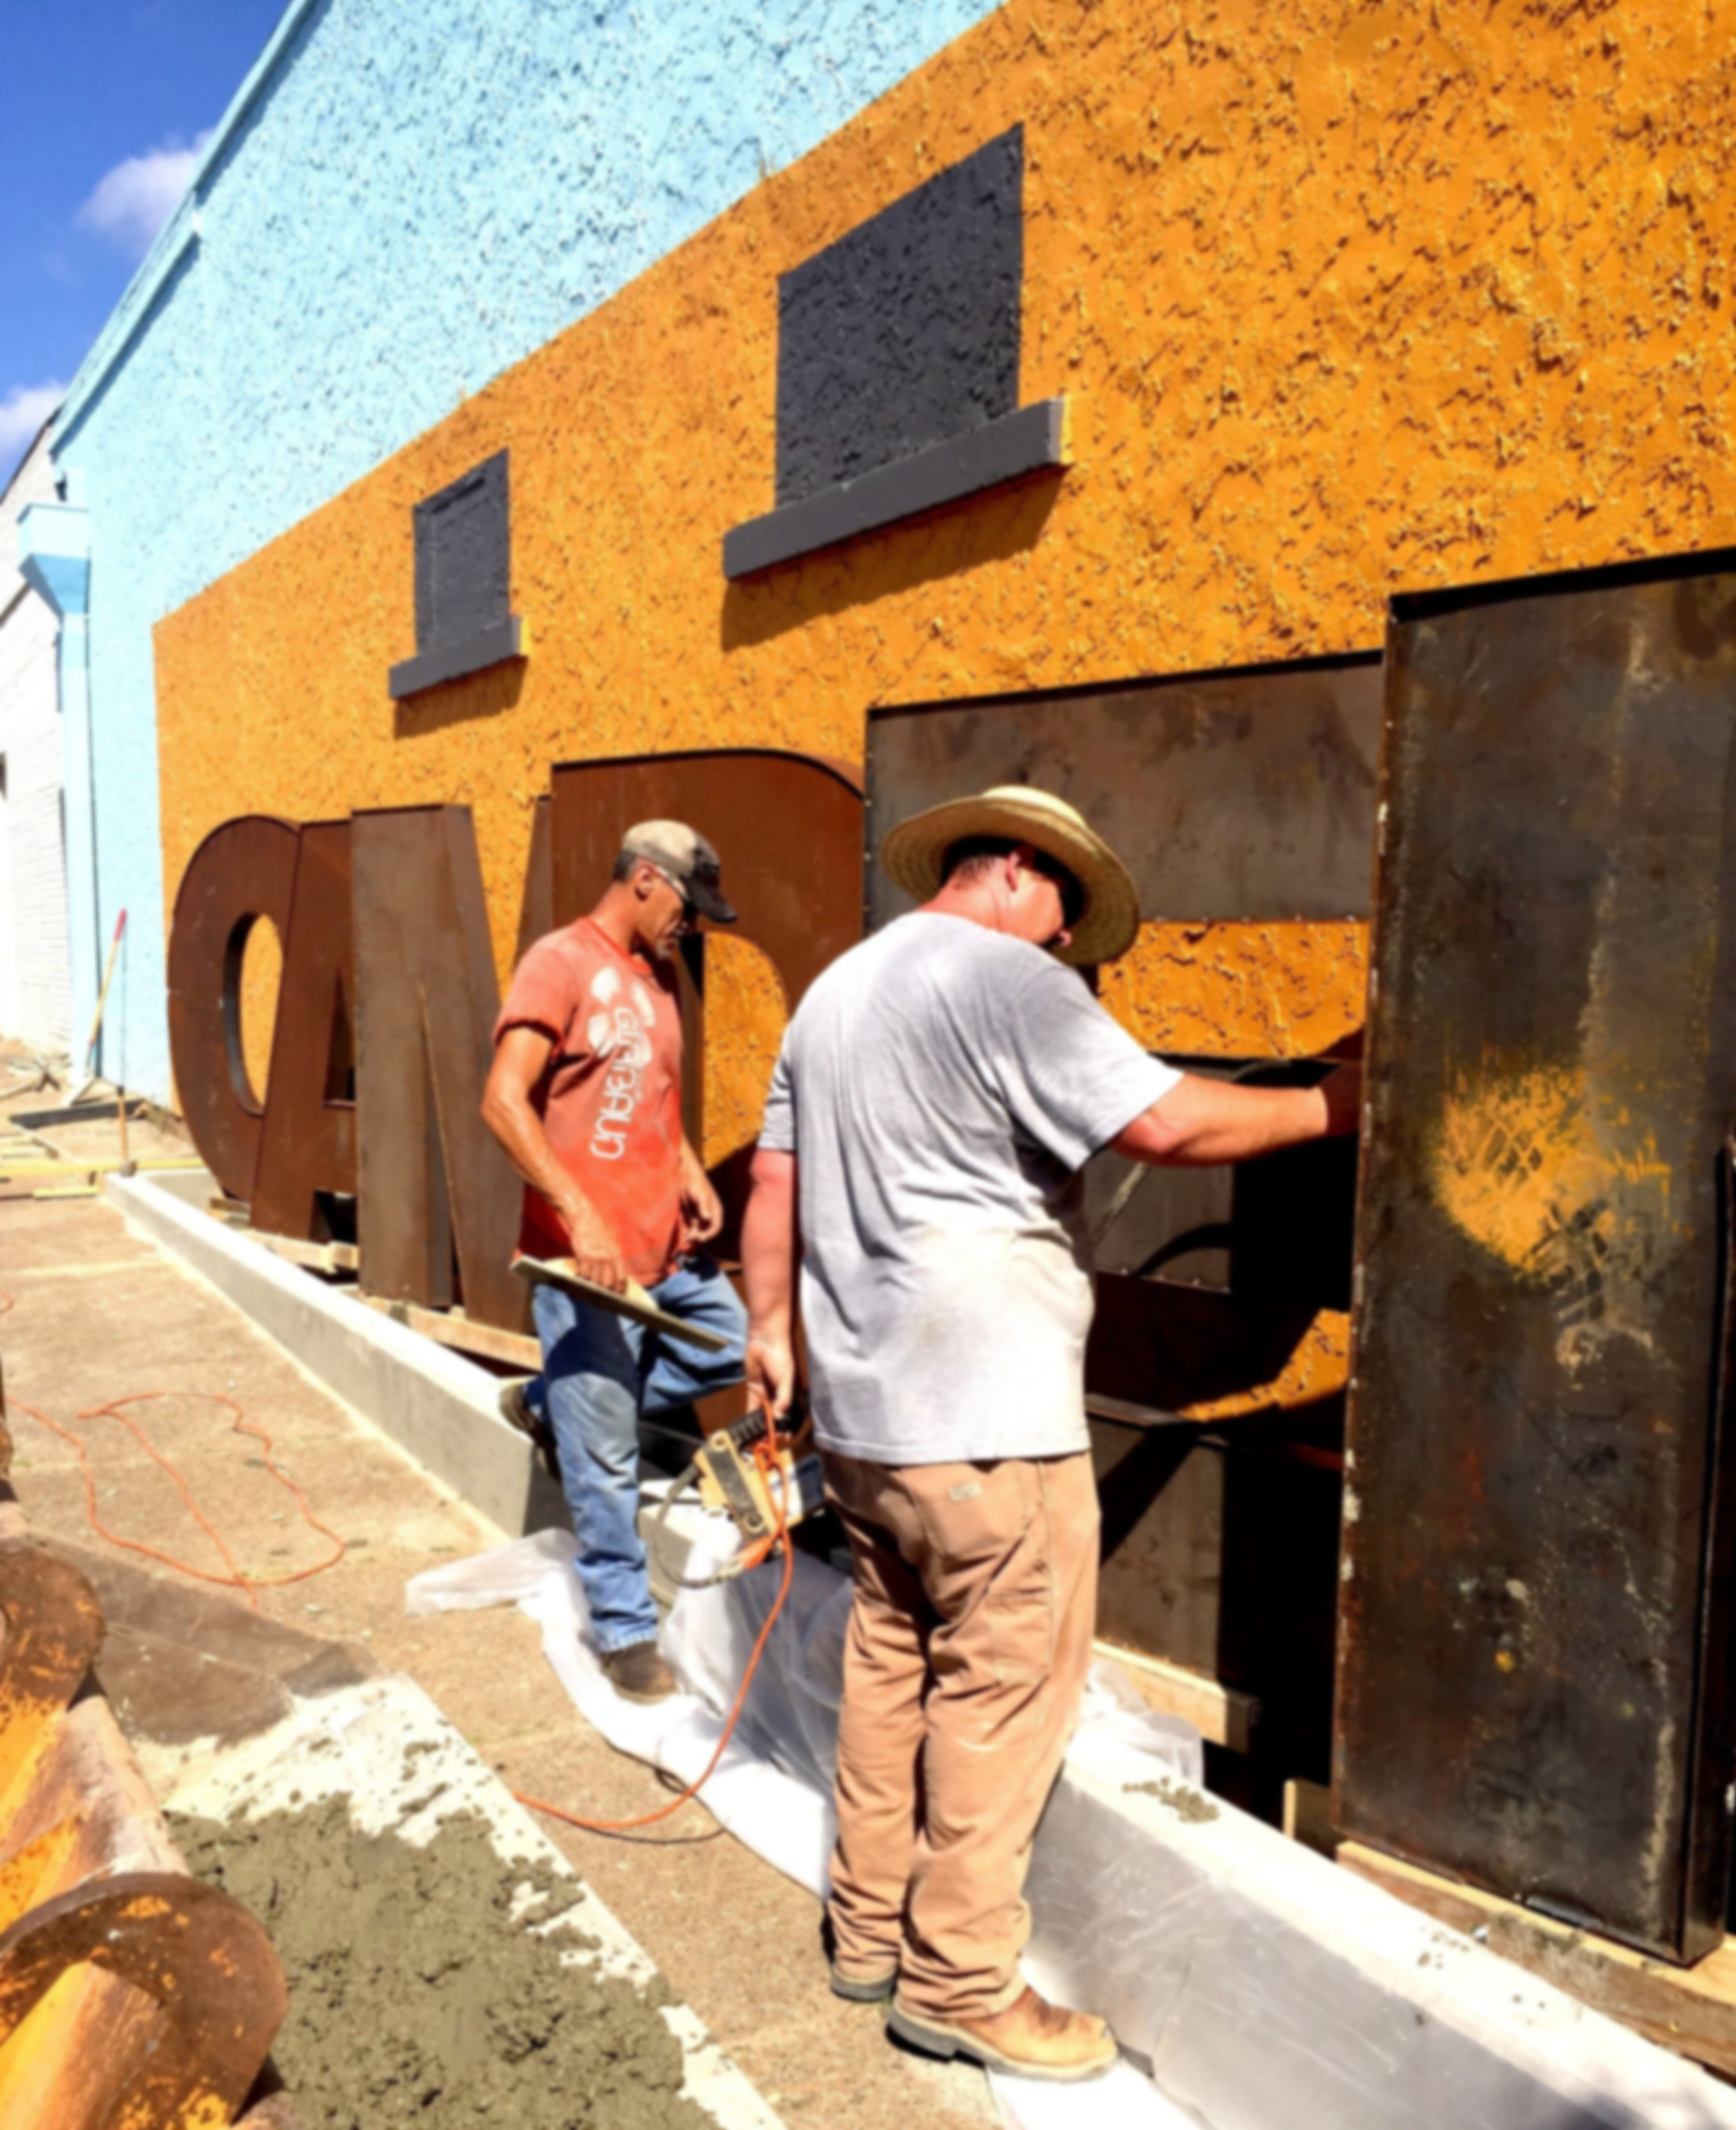 Ron McCann (right), and crew member installing sculpture.